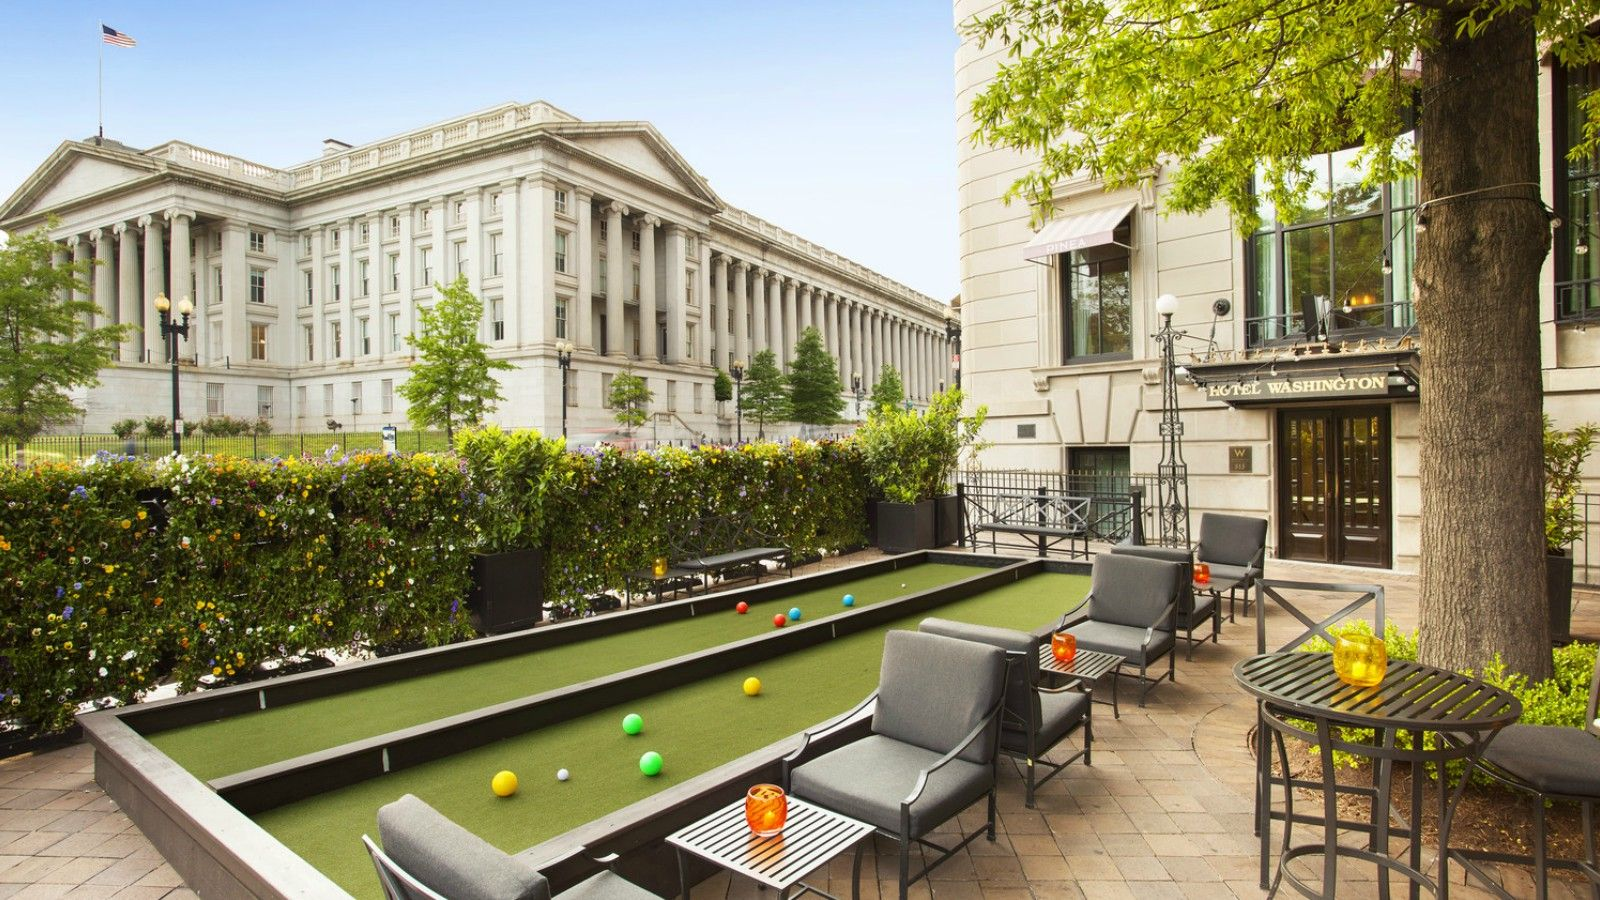 W Washington D.C. - Pinea Patio - Day